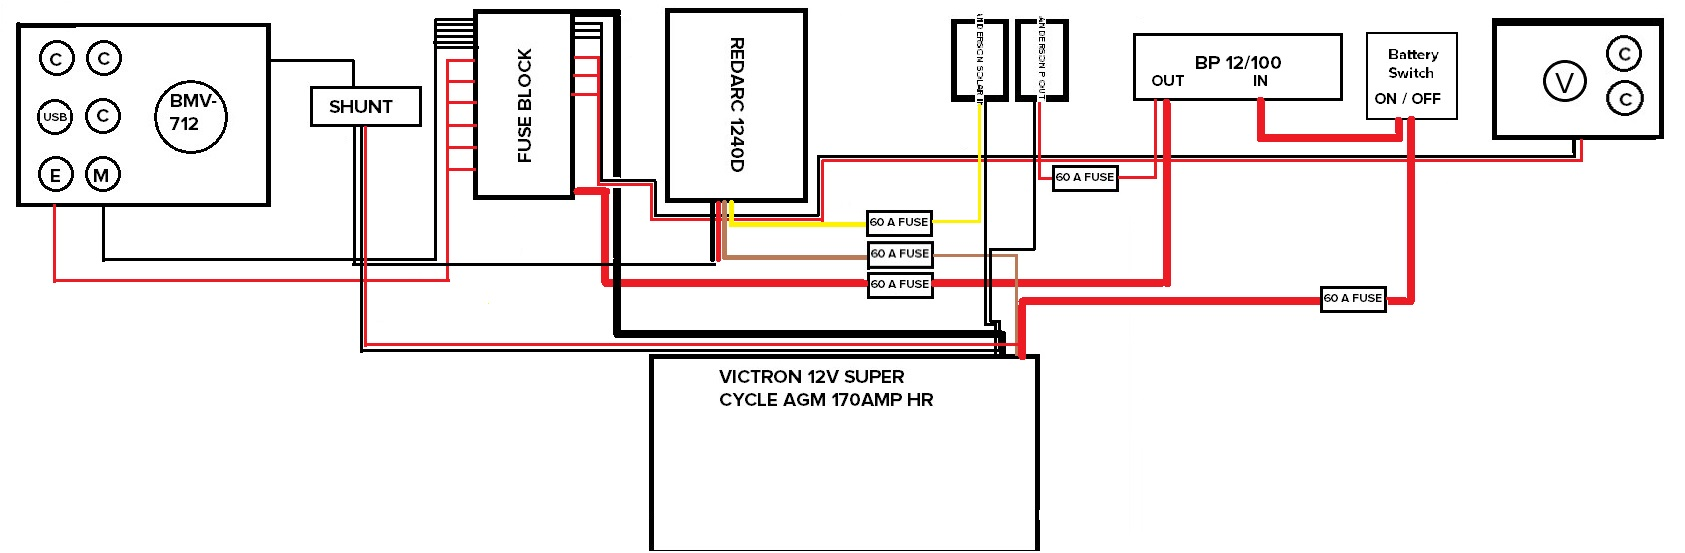 hight resolution of proposed wiring diagram